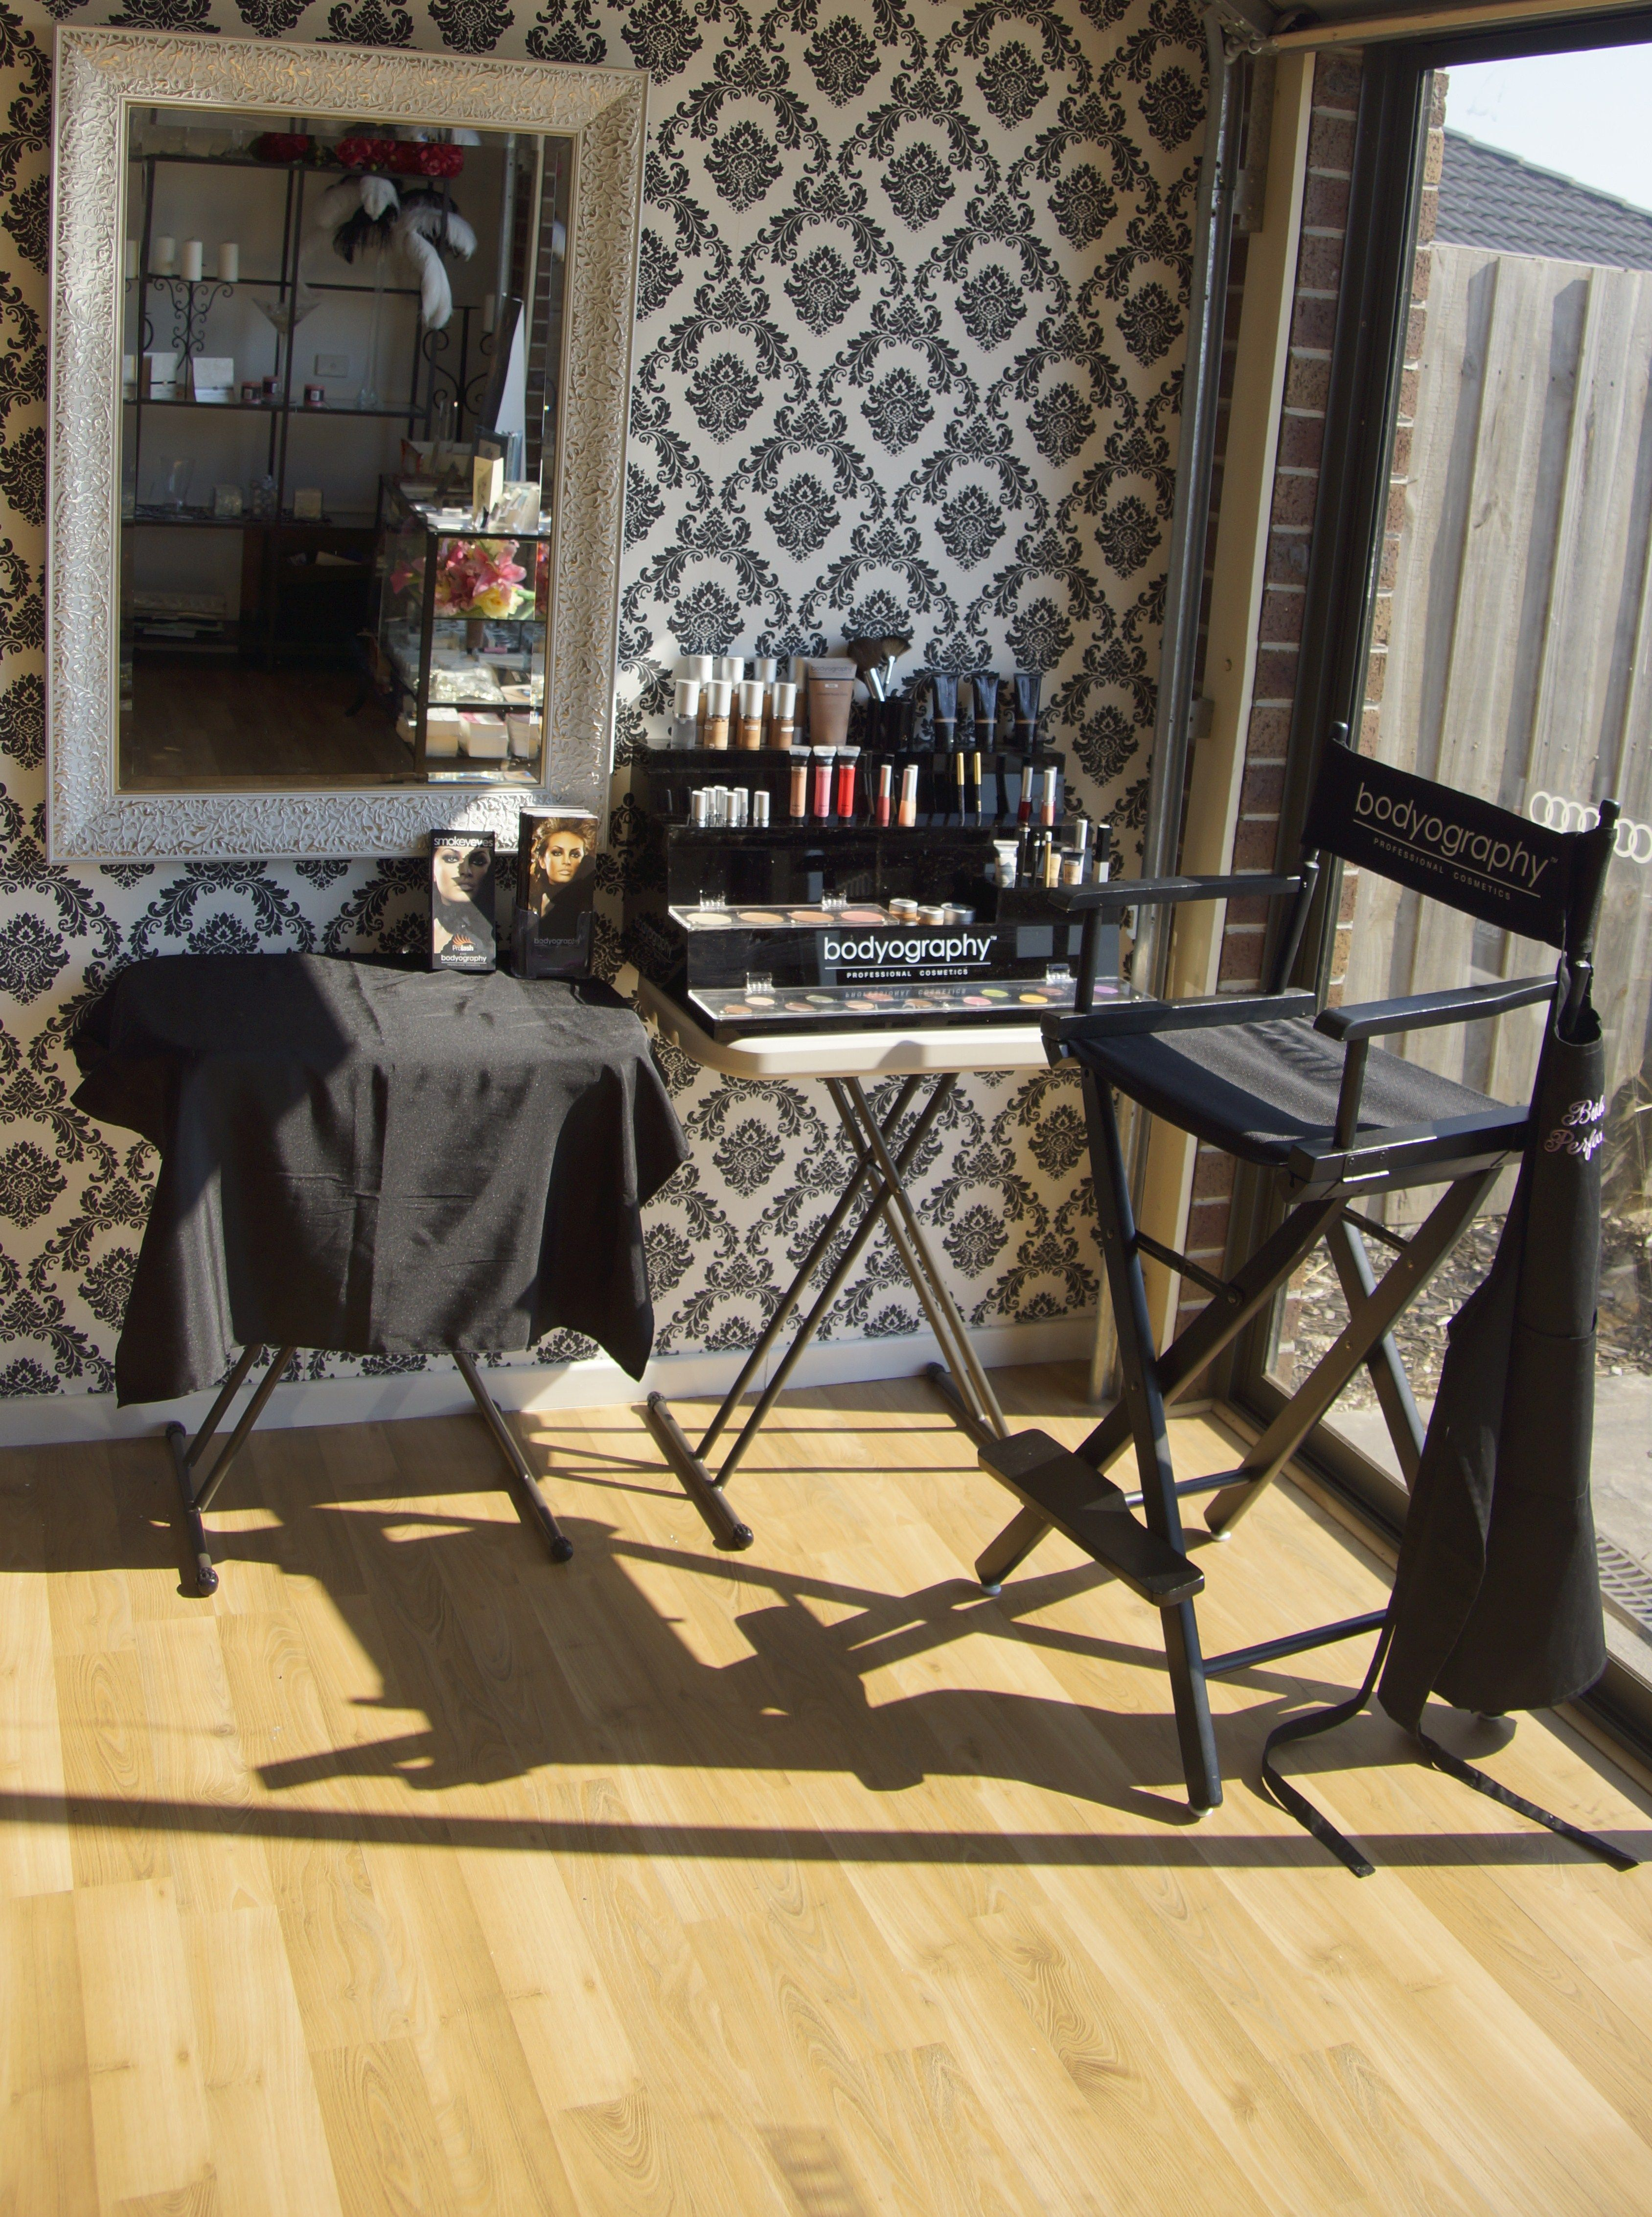 Bodyography Makeup Corner, lots of natural light, Prolash stand, Bridal Perfection Studio, Melbourne